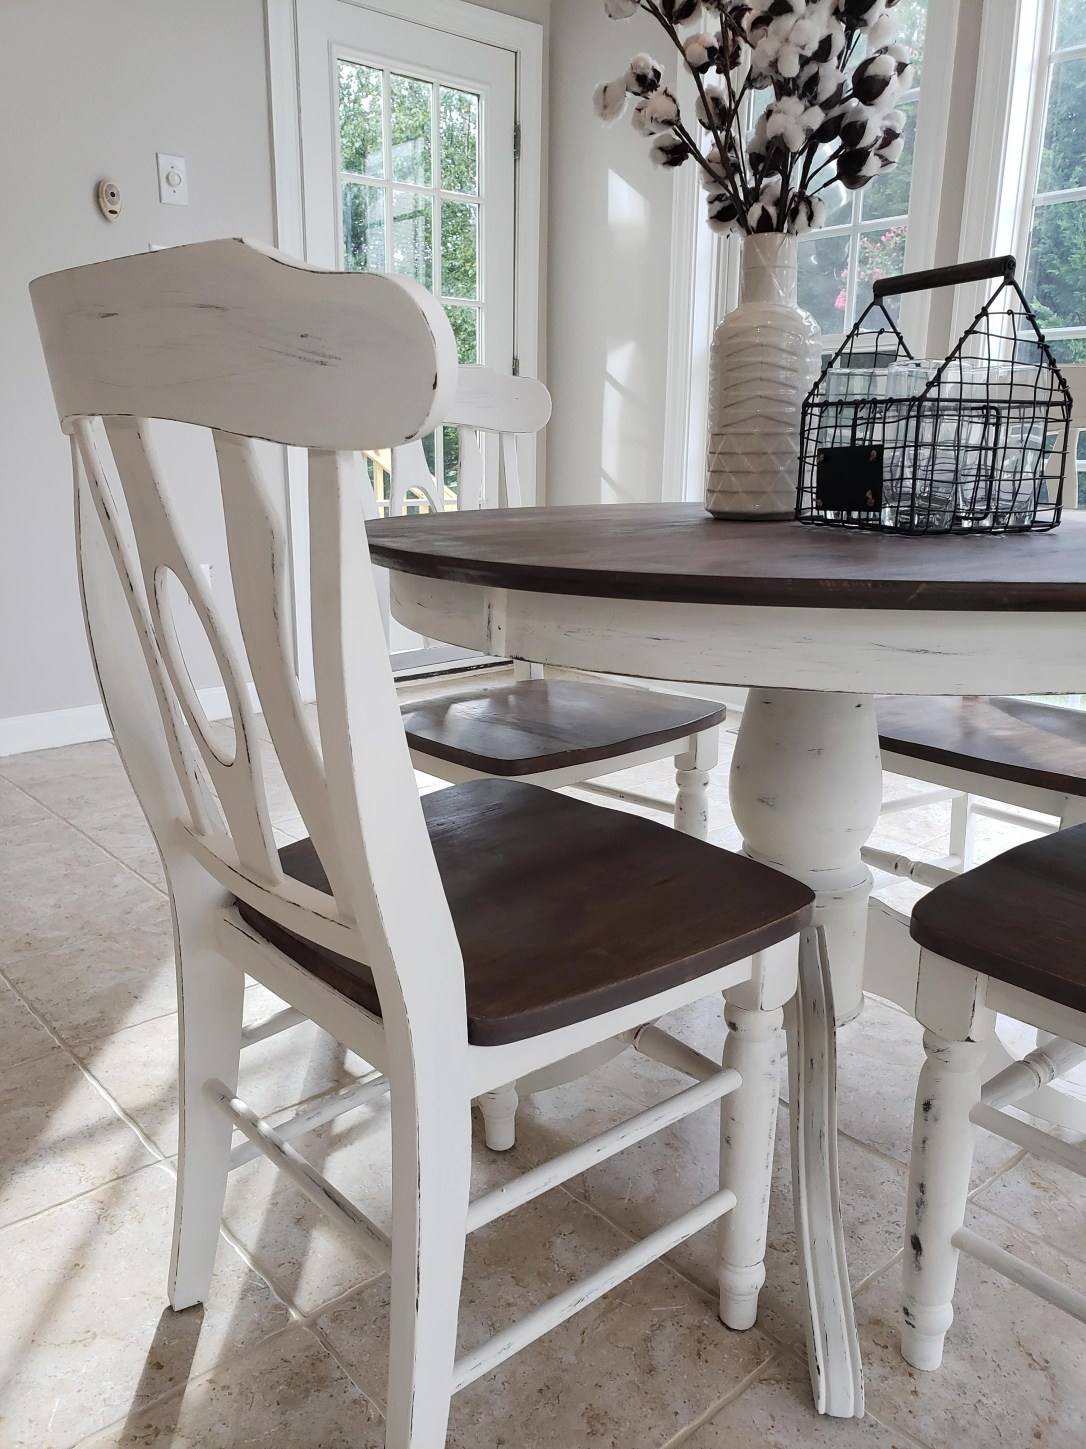 Farmhouse style table and chairs with distressed chalk paint finish